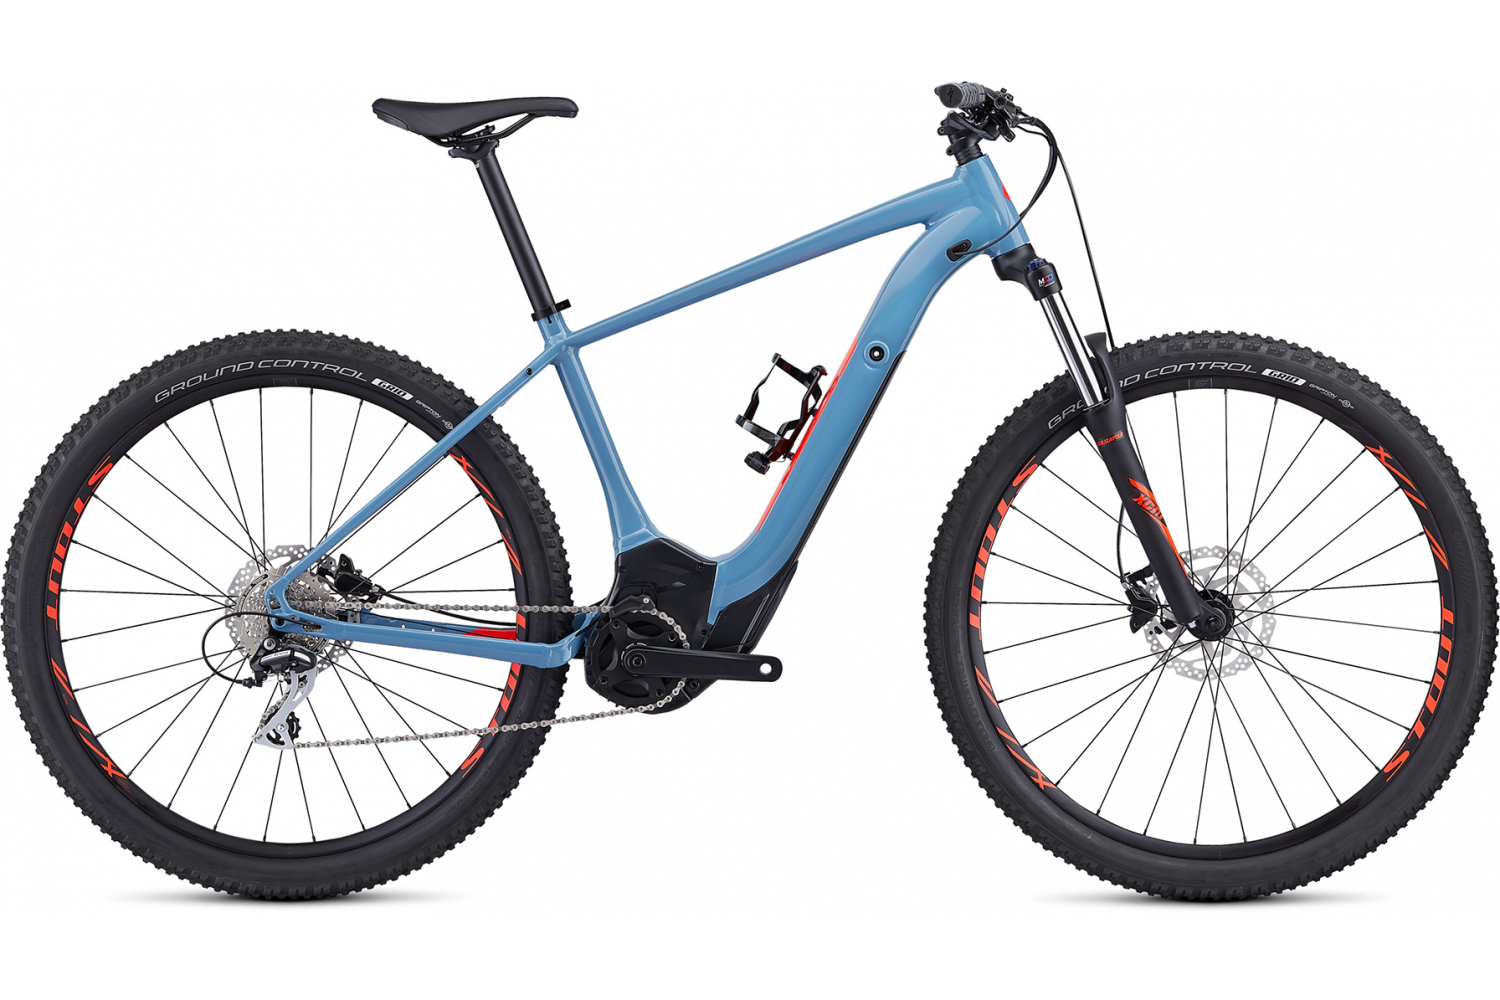 TURBO LEVO Specialized Turbo Levo Hardtail Men 2019 Артикул 95119-7302, 95119-7303, 95119-7304, 95119-7305, 95119-7502, 95119-7503, 95119-7504, 95119-7505